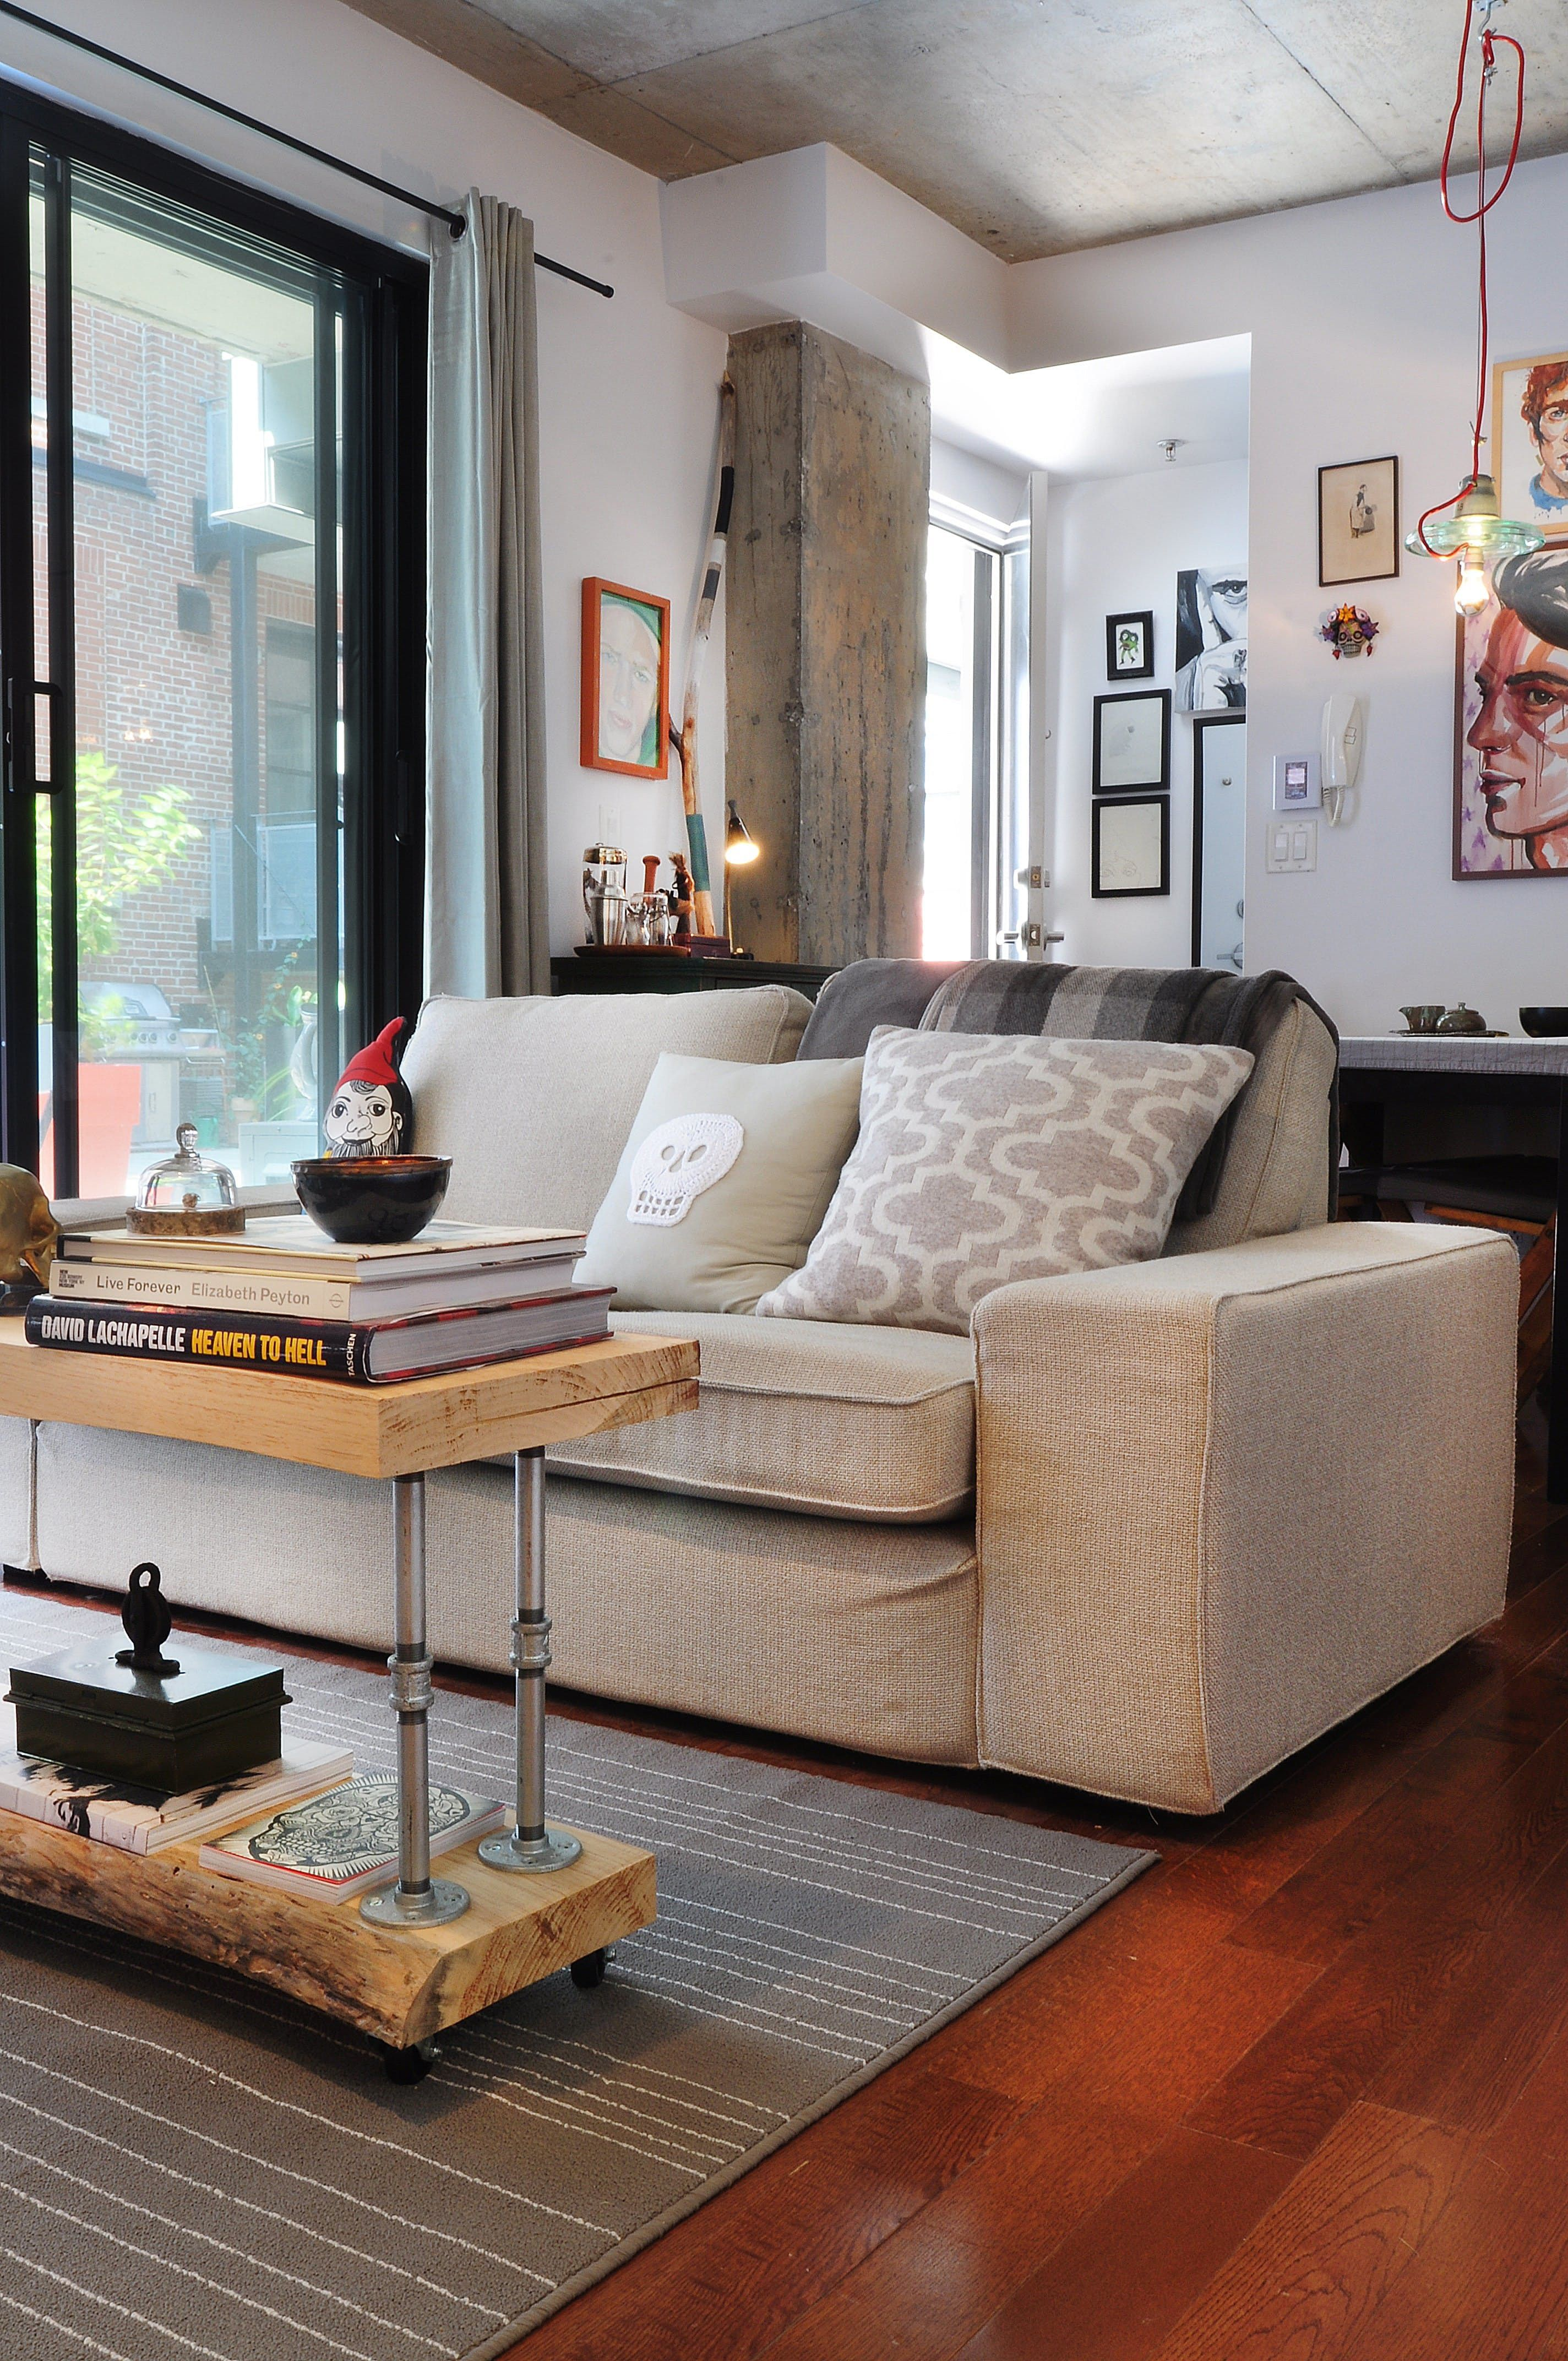 Julienu0027s Small Studio Apartment Bursting With Art, DIY Projects U0026 Quirky  Objects U2014 House Tour